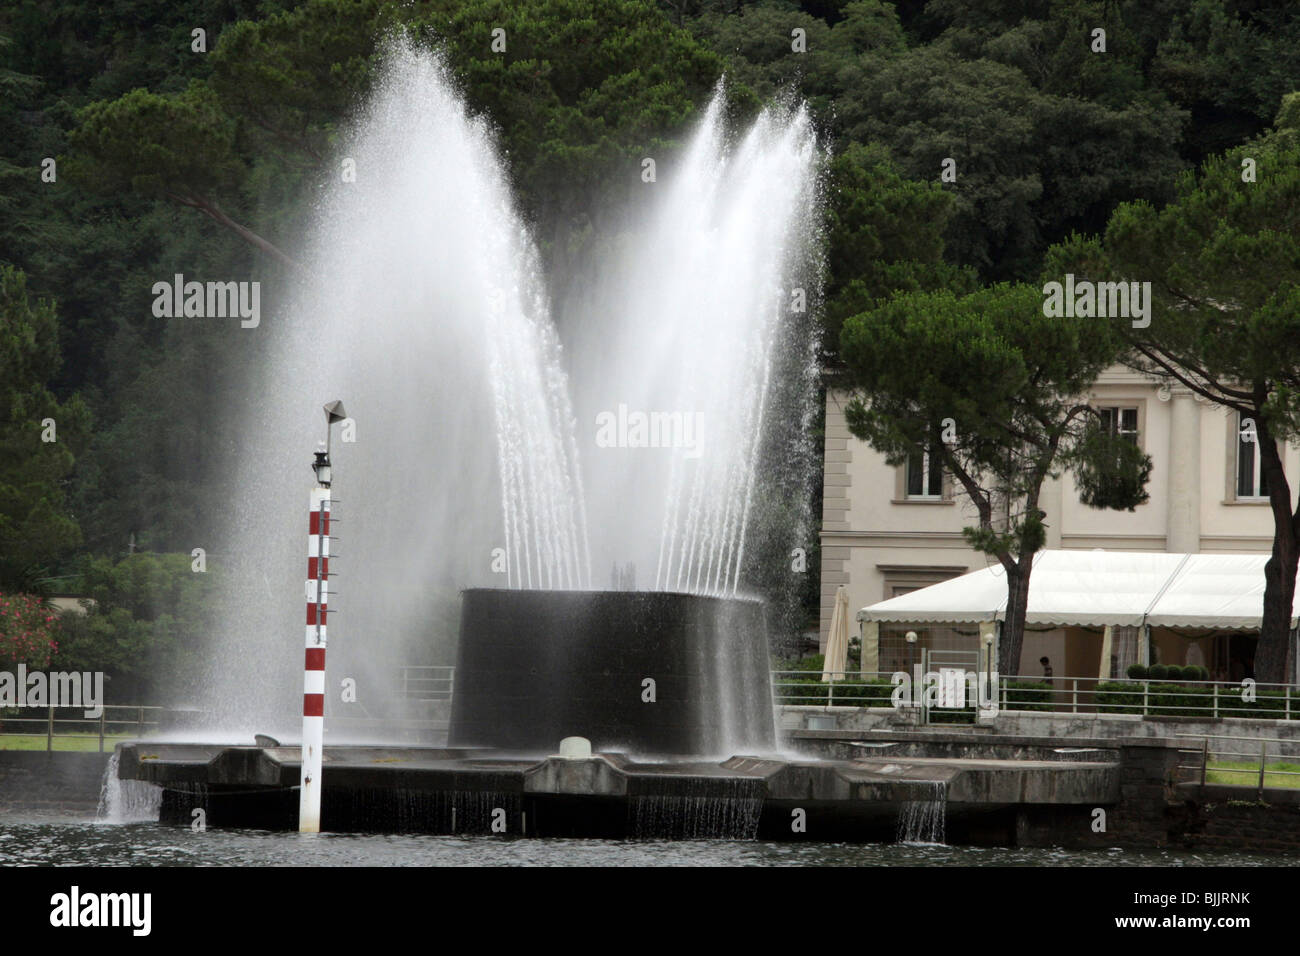 Italy, Lombardy, Como, a fountain - Stock Image